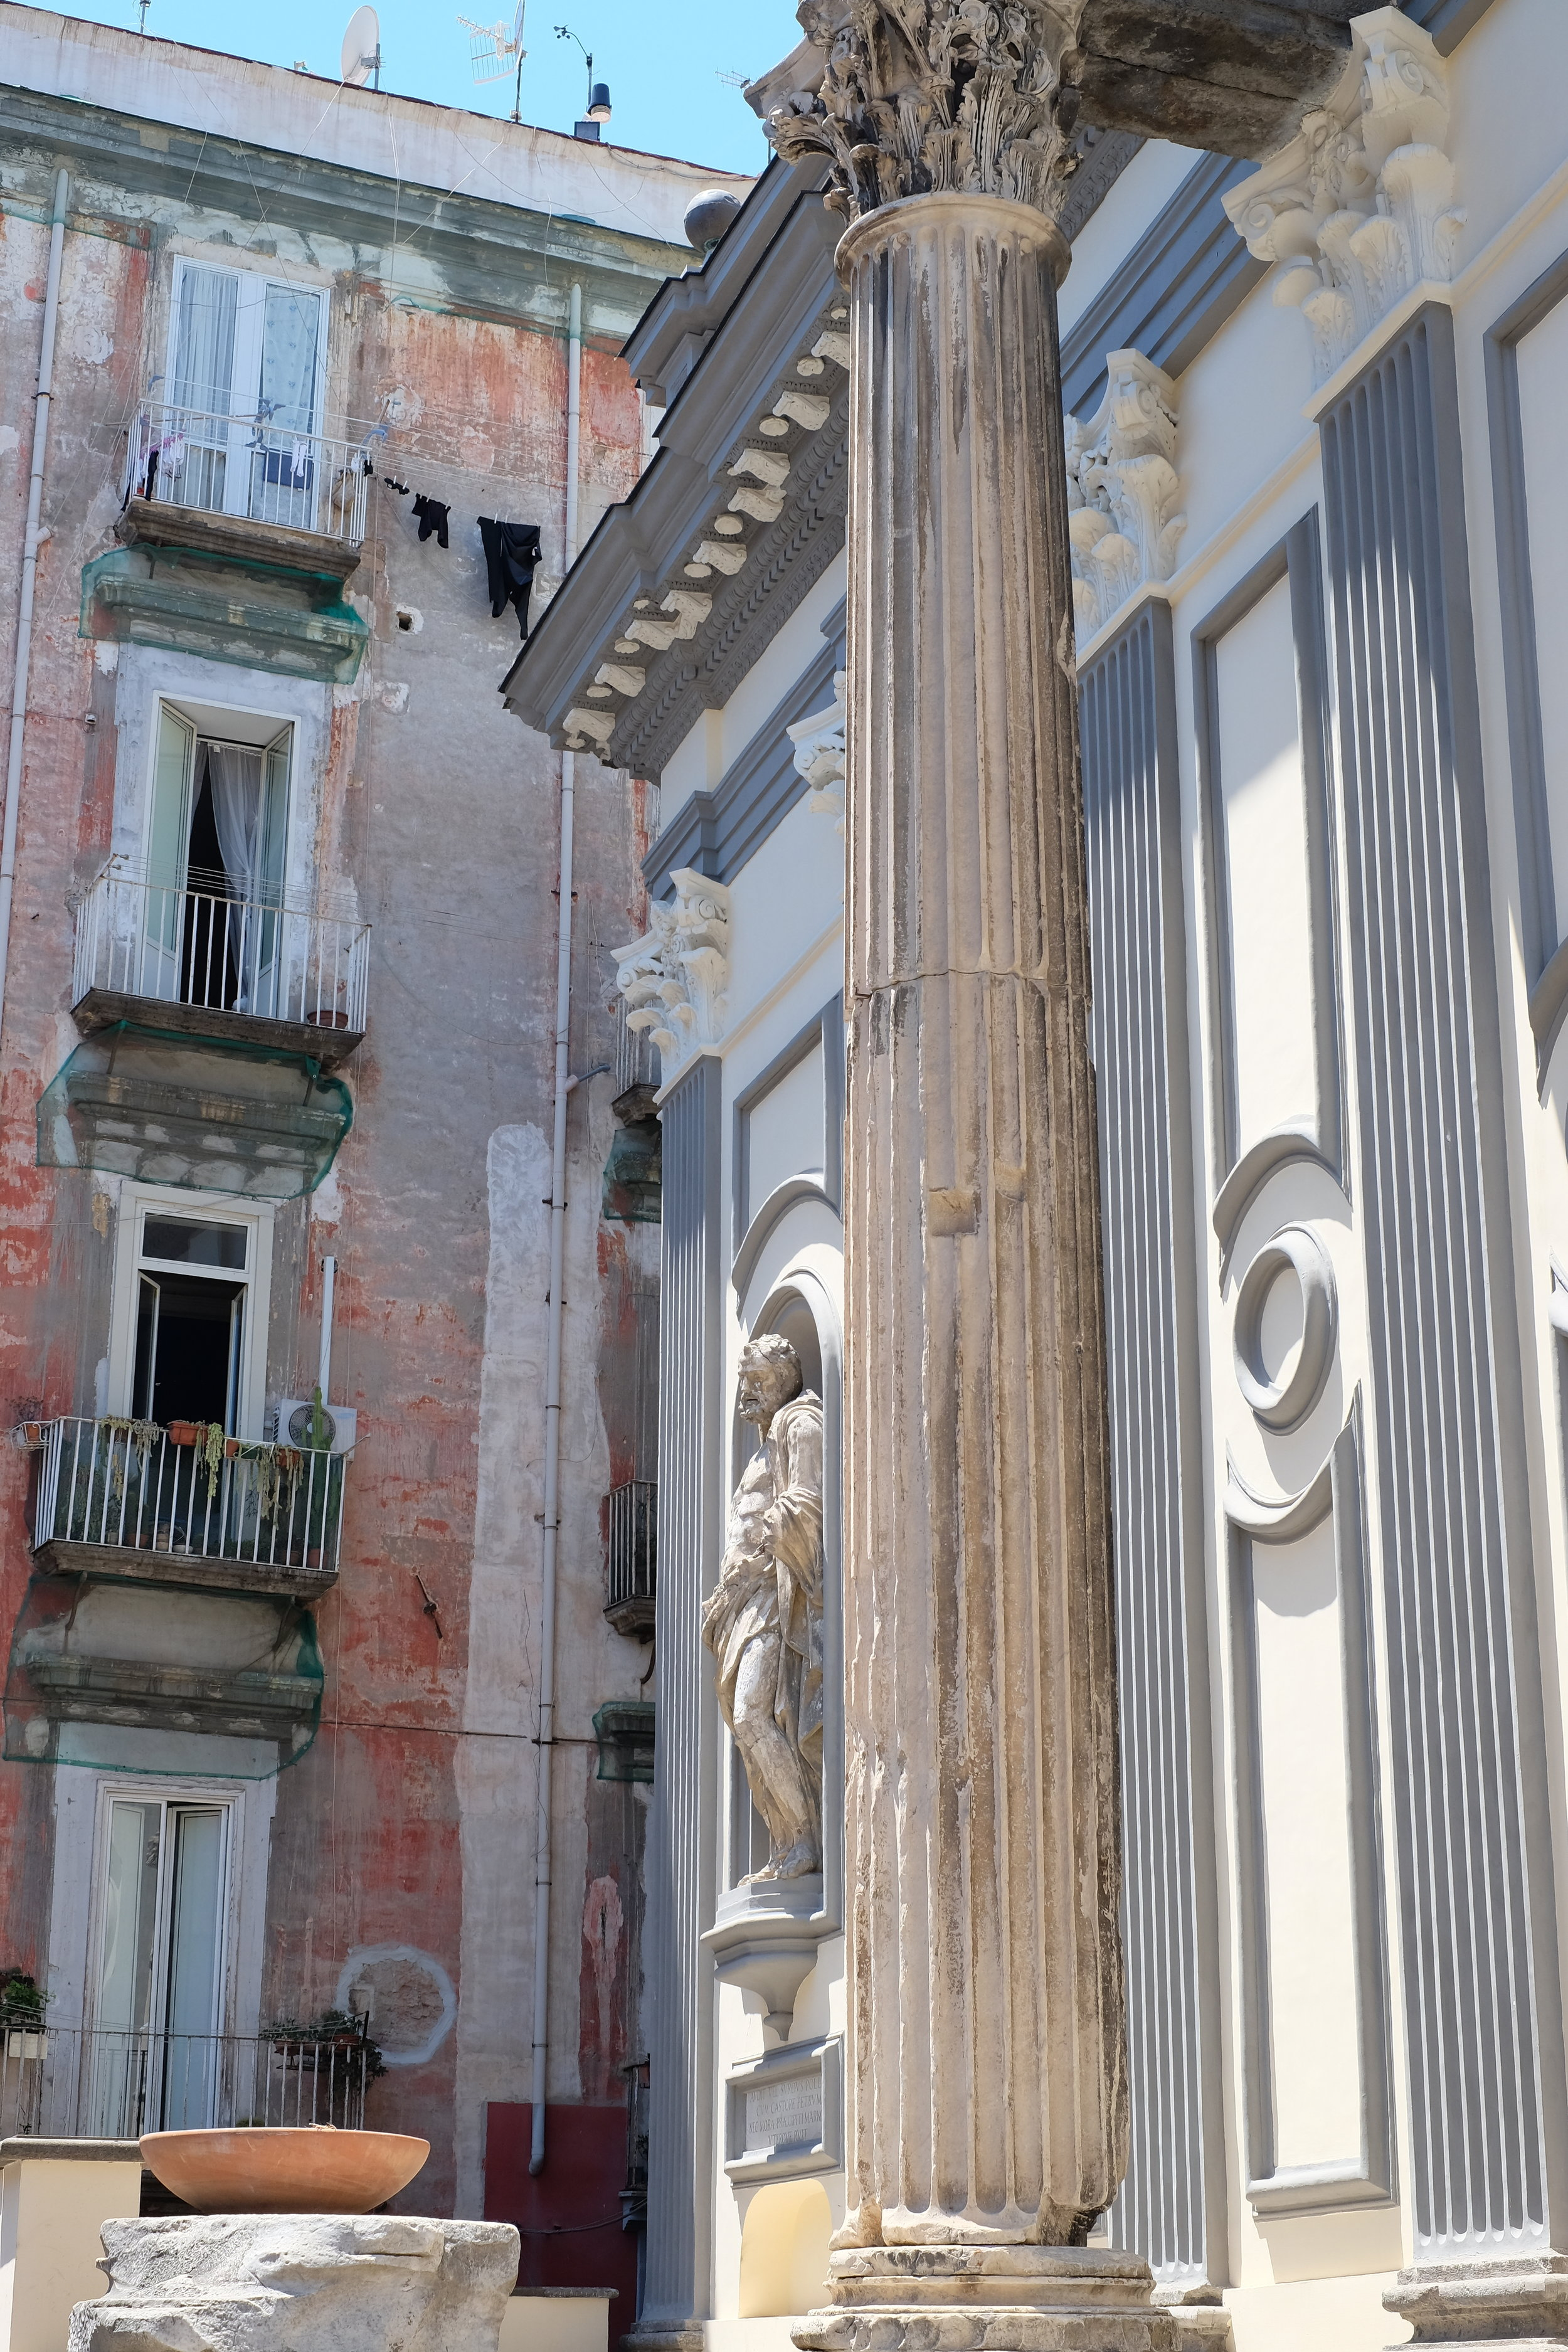 Rests of the the Corinthian columns.